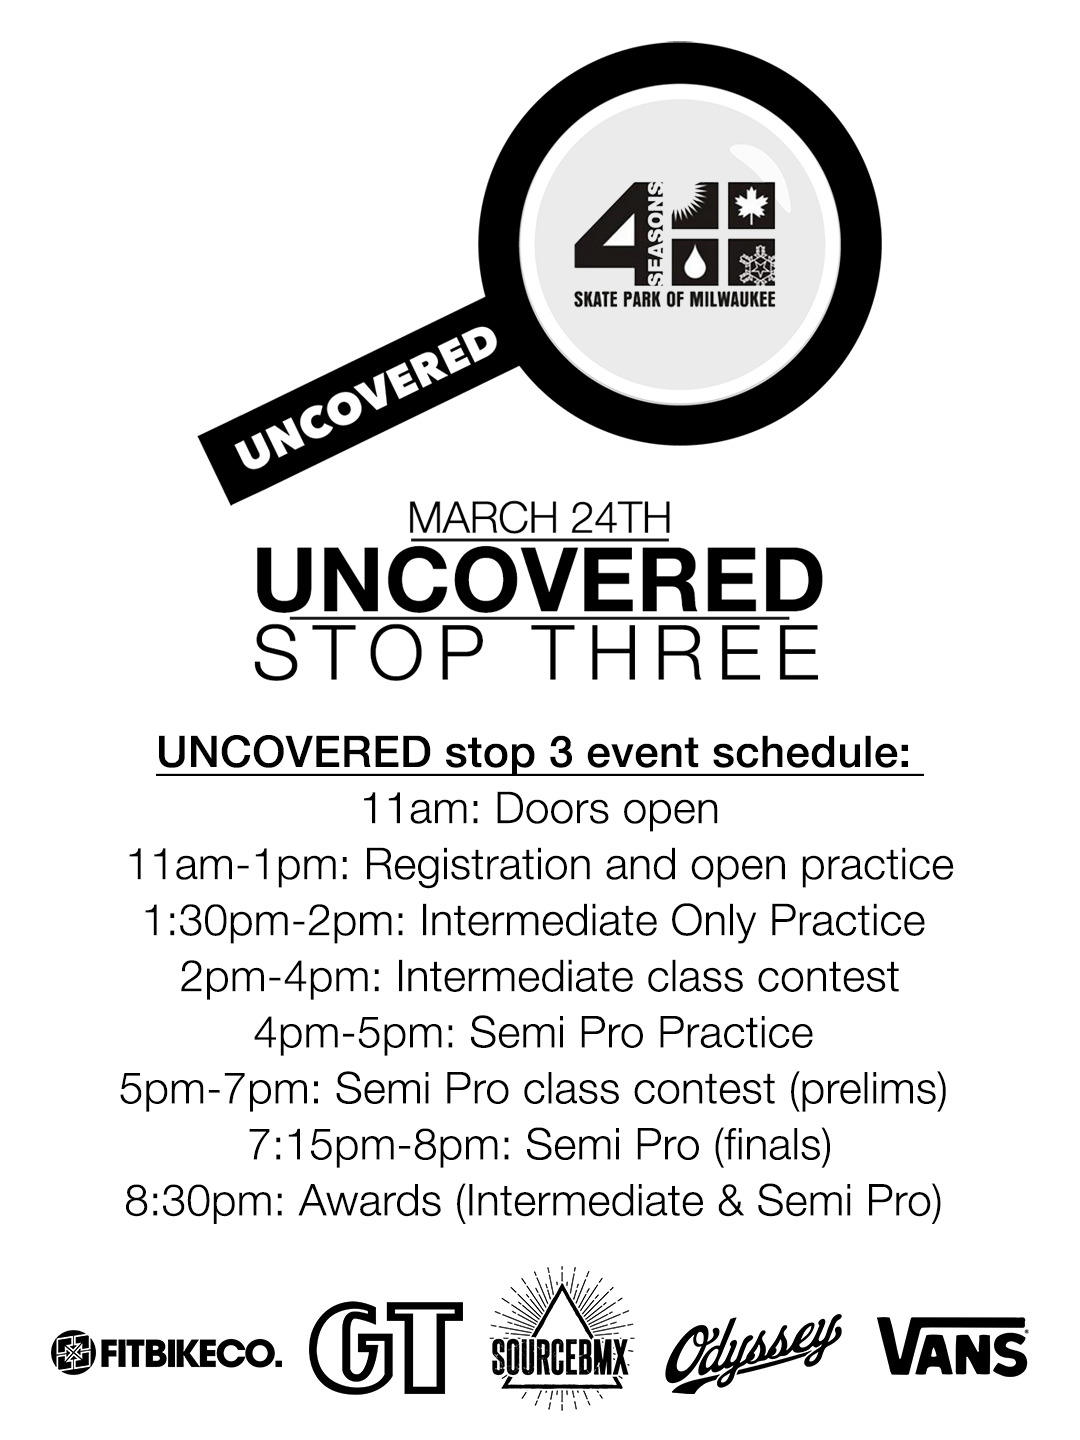 Milwaukee 4 Seasons Skatepark Uncovered Contest Schedule